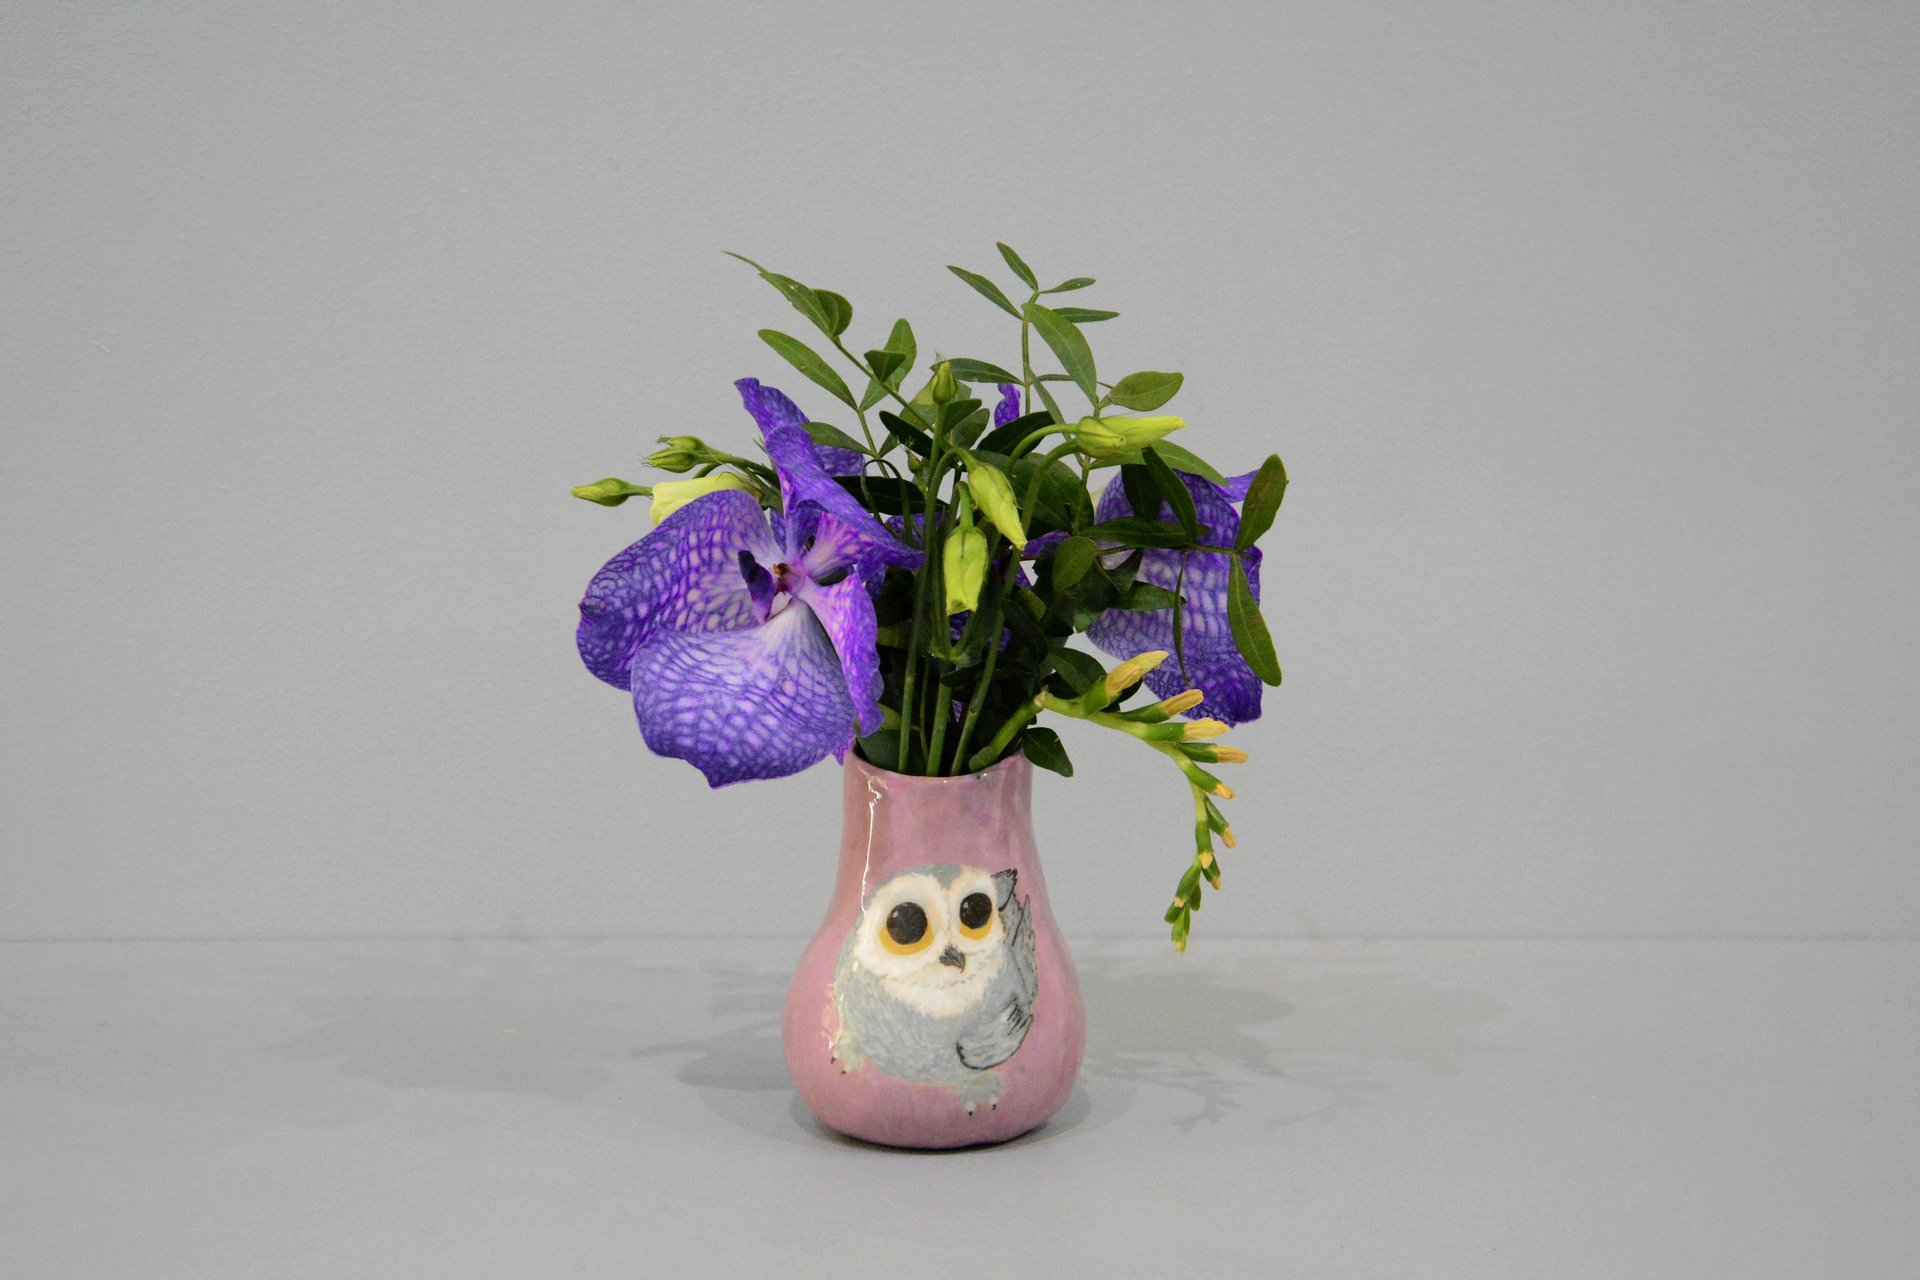 Small Vase or flowers «The Snowy owl», height - 10 cm. Photo 1415.